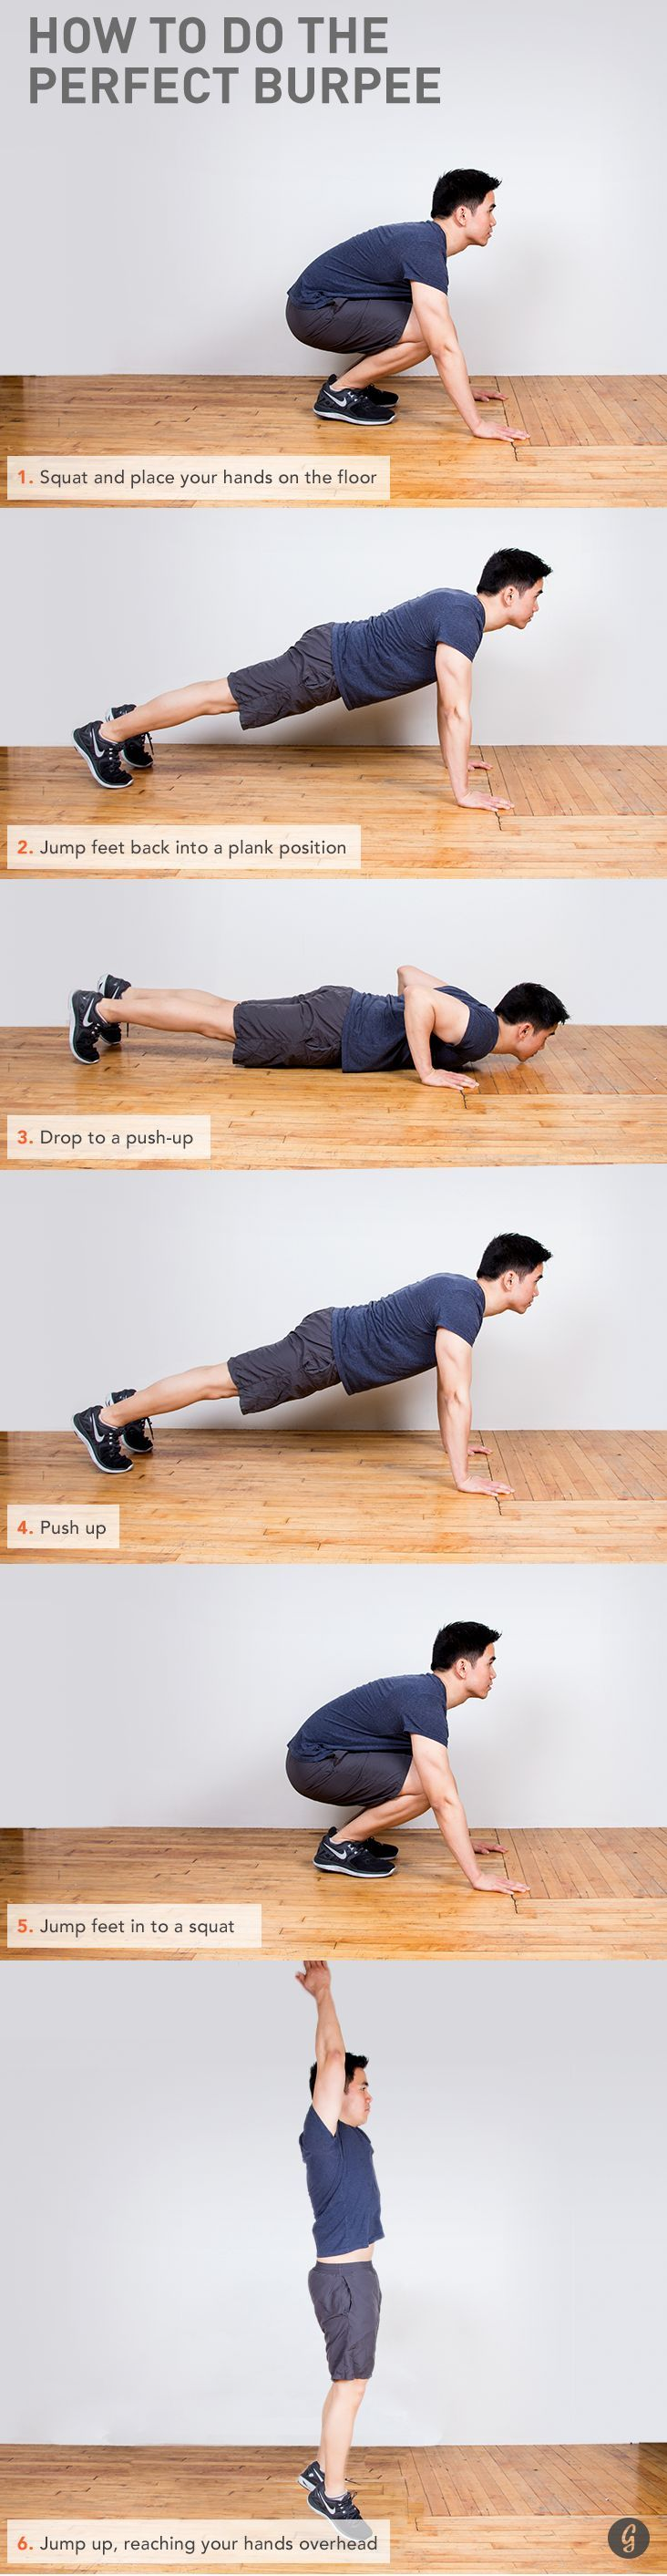 Step-by-step guide to the perfect Burpee #howto #guide #fitness